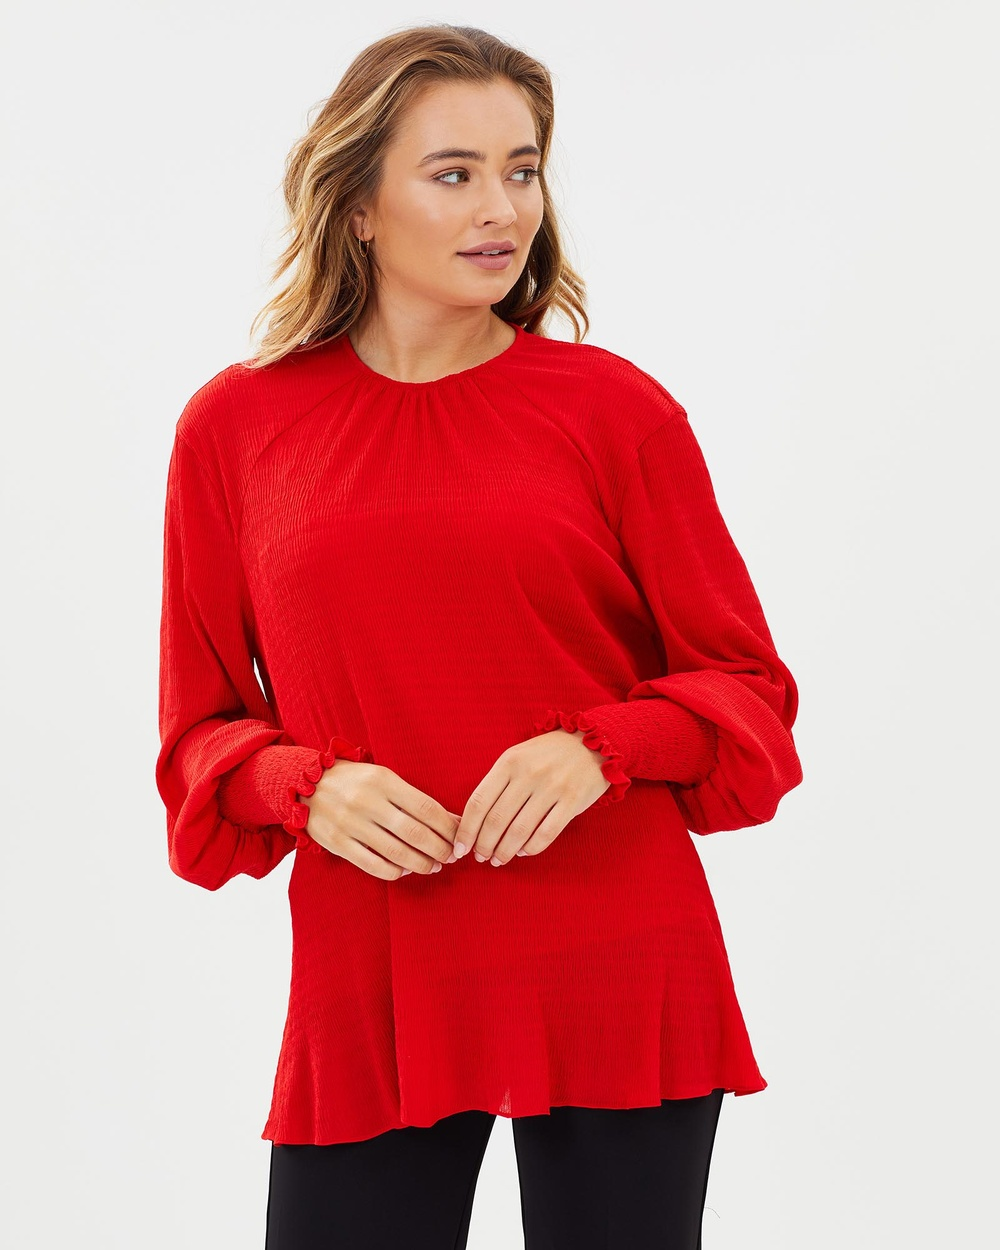 Cooper St Ti Amo Long Sleeve Top Tops Poppy Red Ti Amo Long Sleeve Top